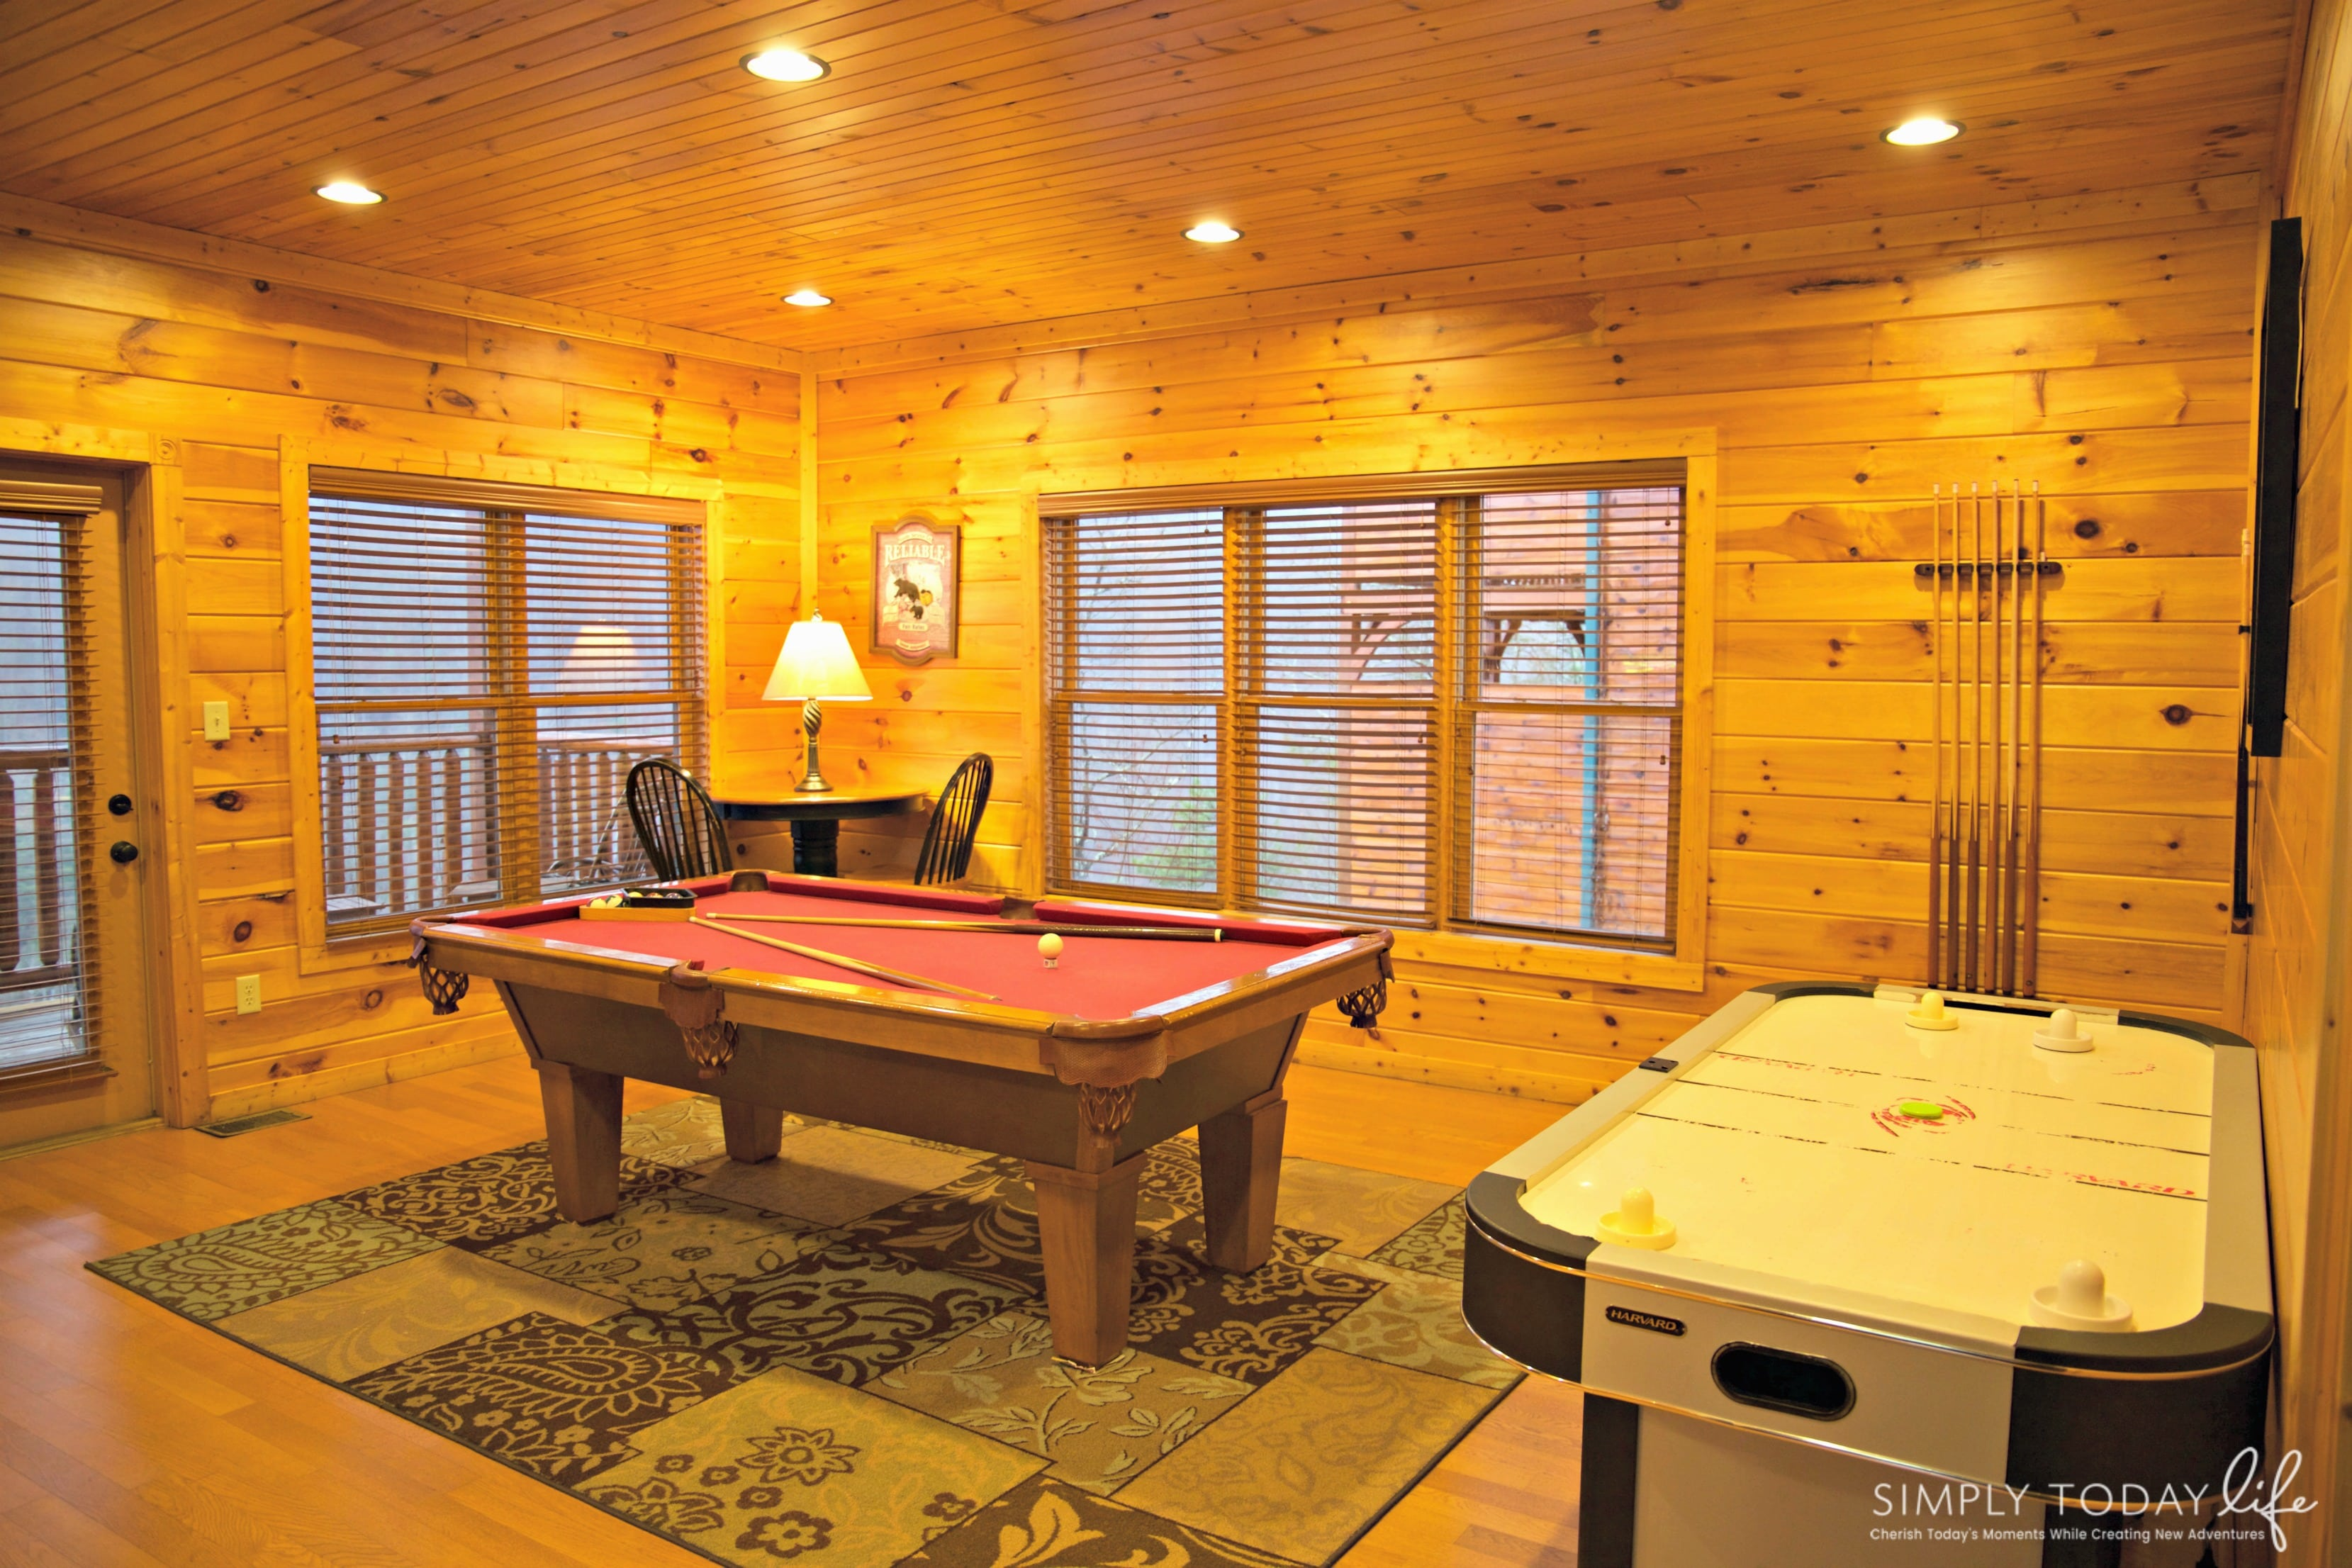 Best Cabins In Gatlinburg TN For Families - simplytodaylife.com